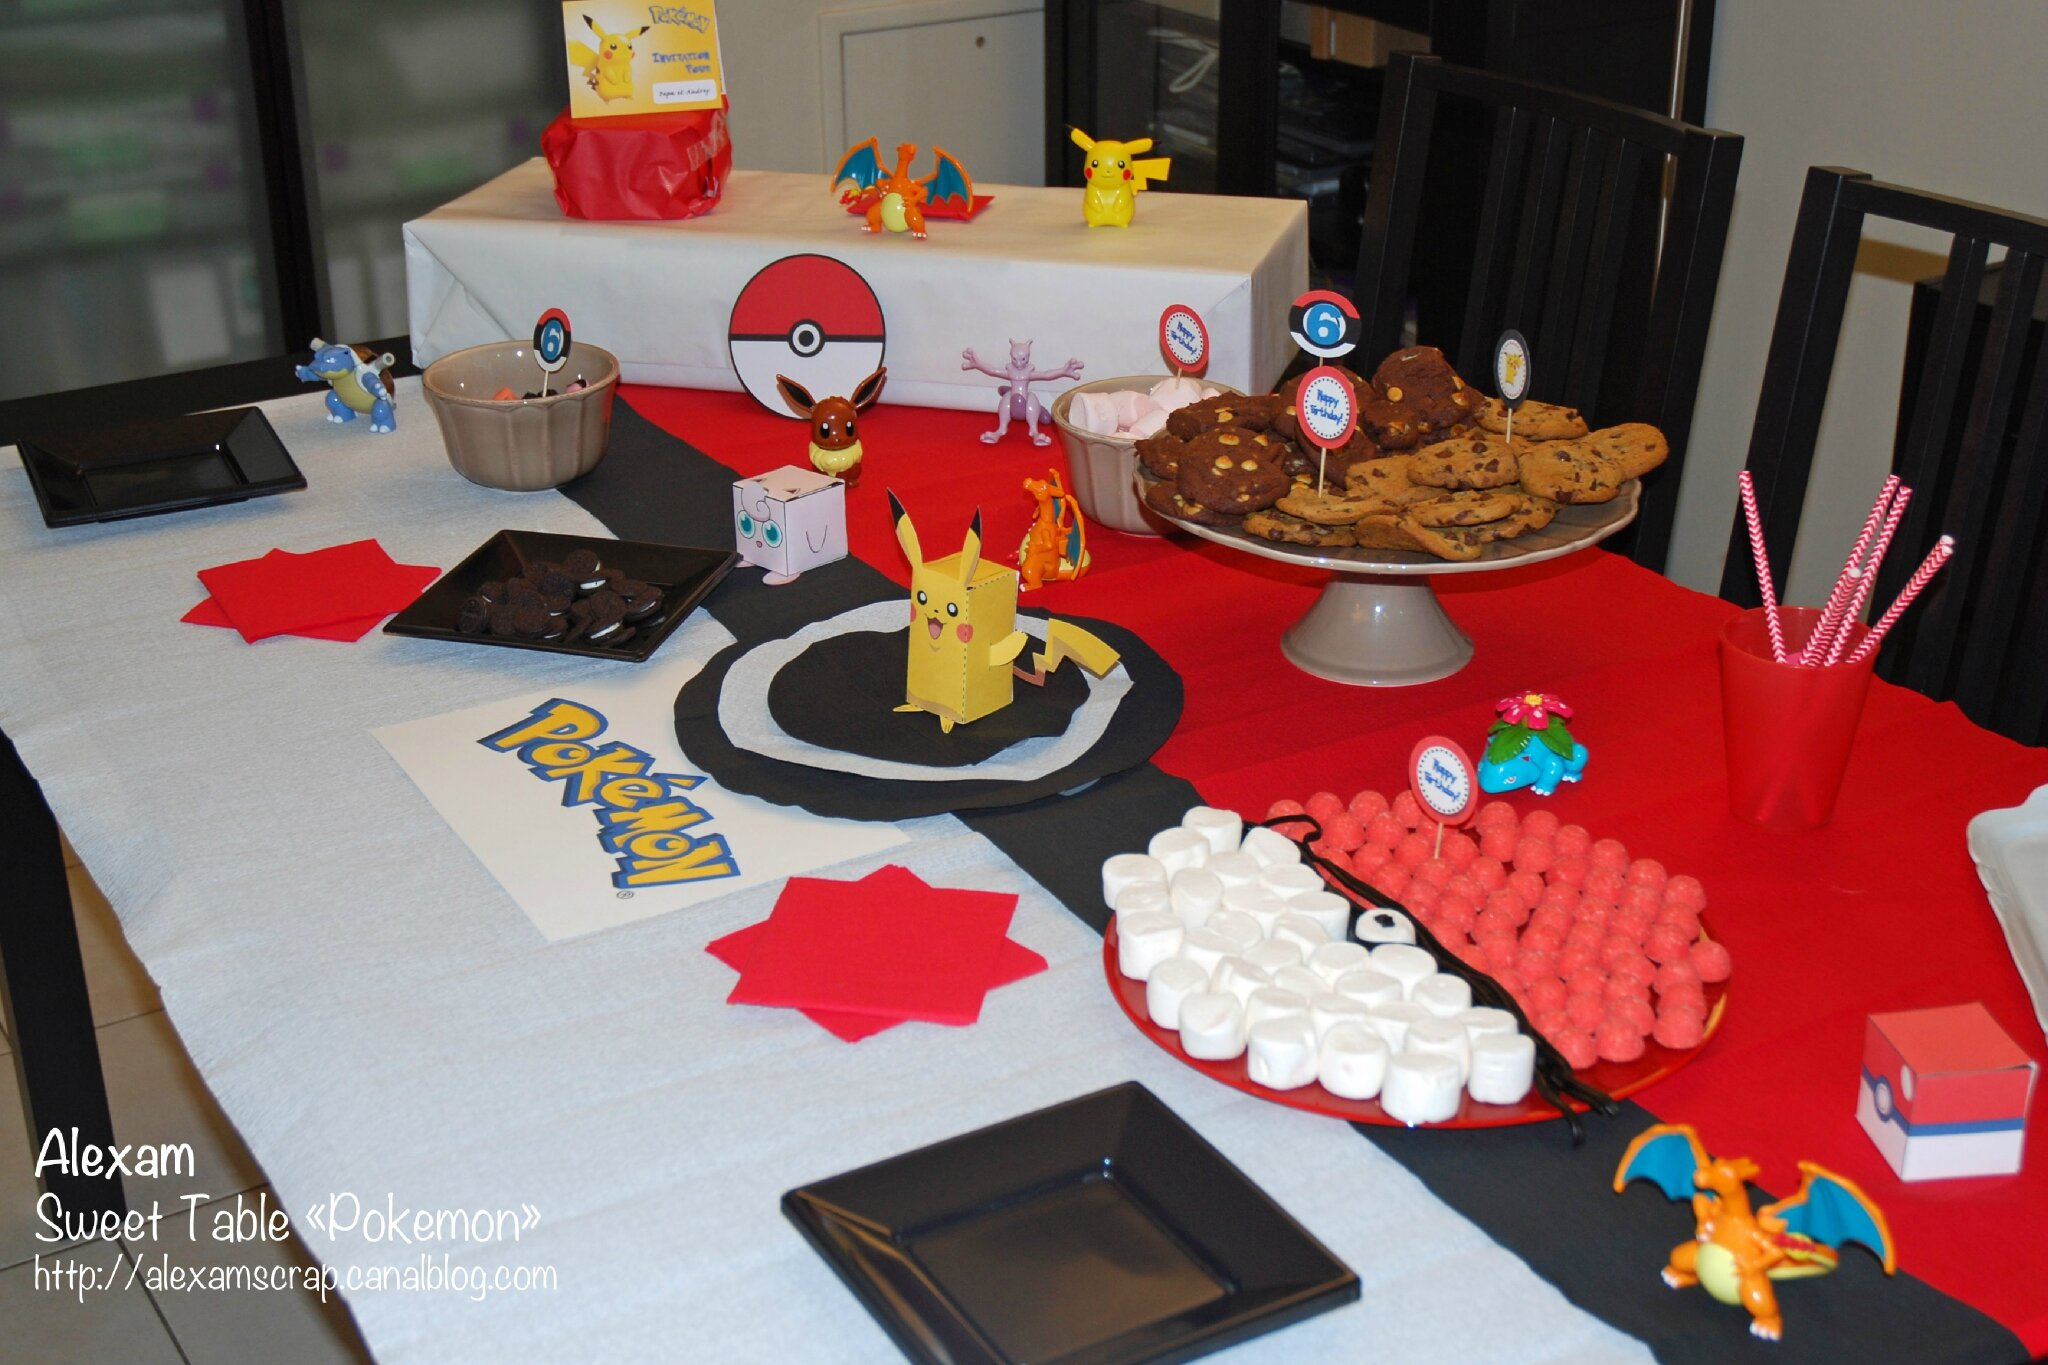 sweet table pokemon alexam. Black Bedroom Furniture Sets. Home Design Ideas